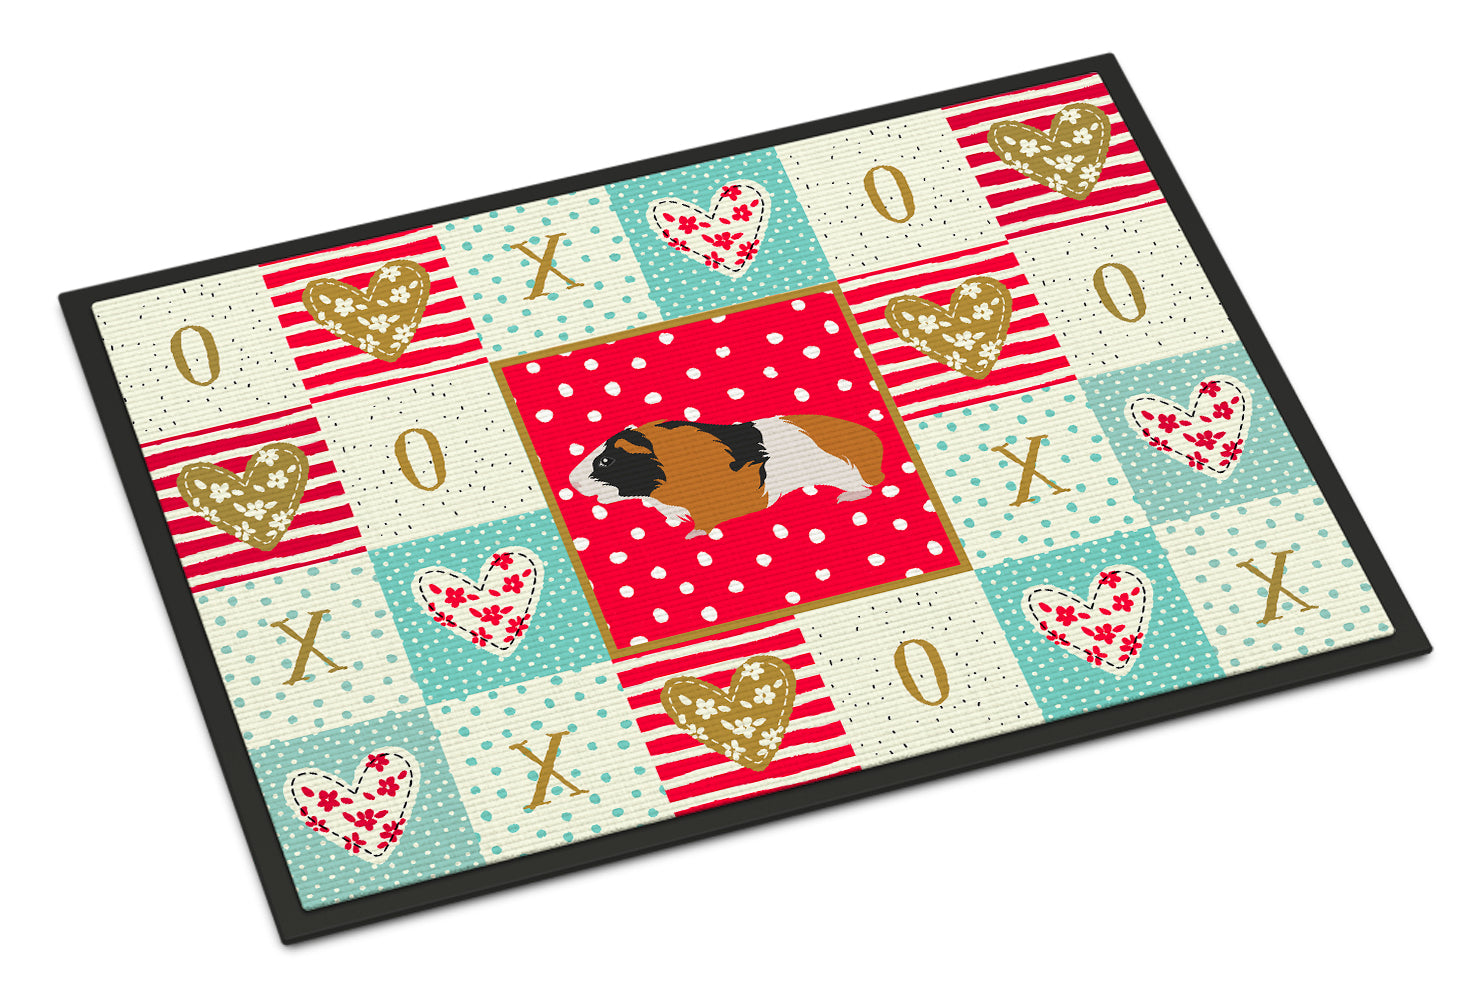 Rex Guinea Pig Love Indoor or Outdoor Mat 18x27 CK5432MAT by Caroline's Treasures